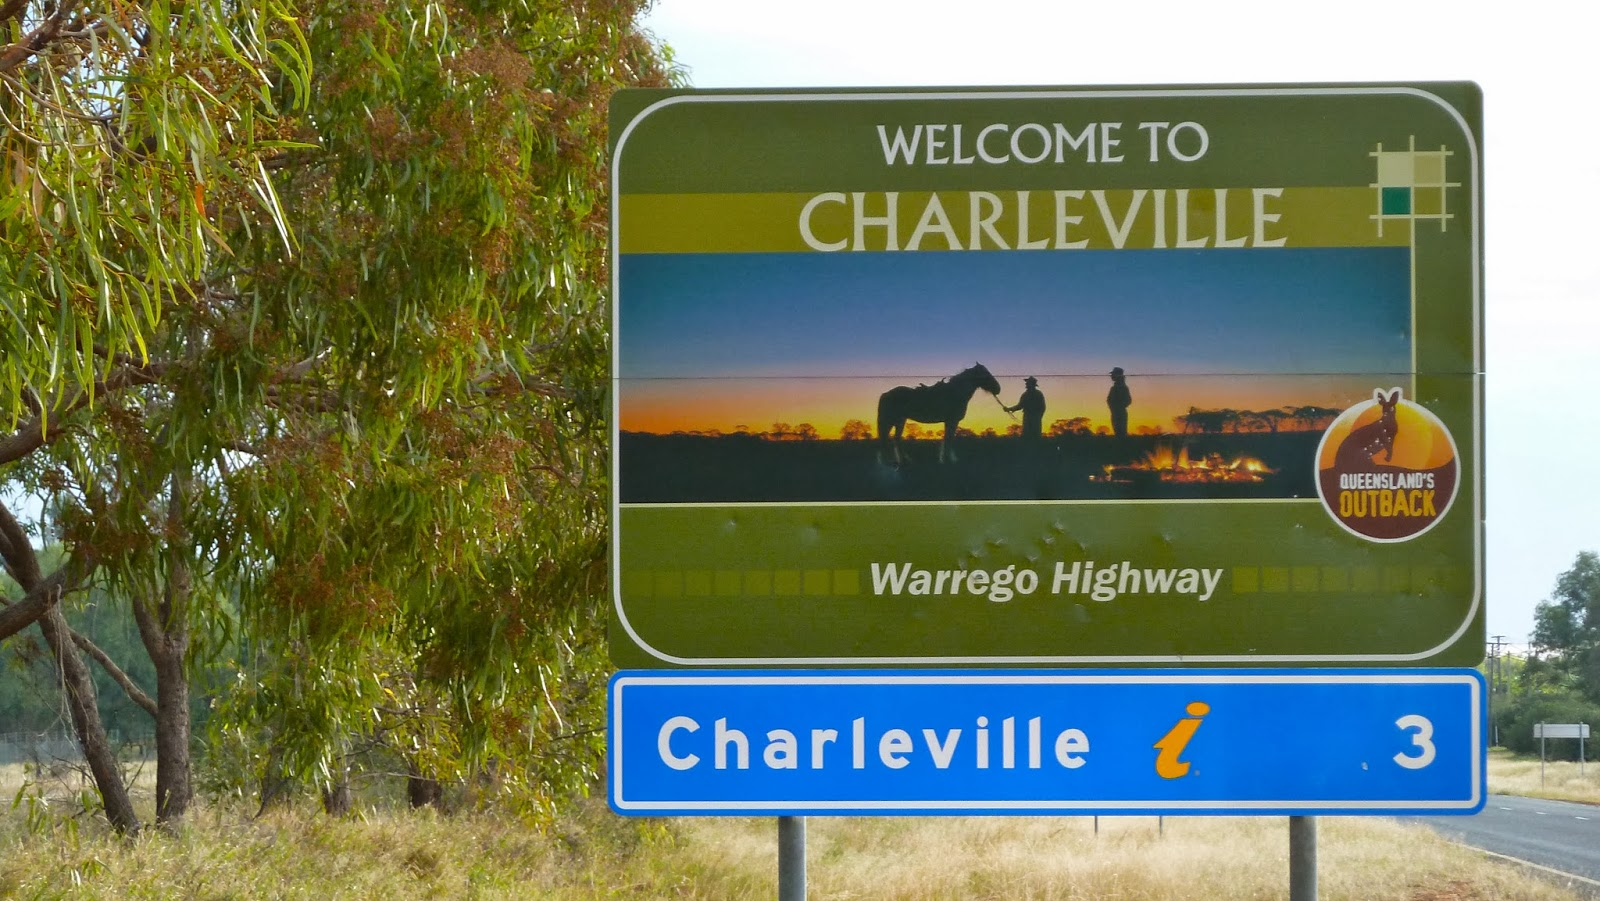 Welcome to Charleville